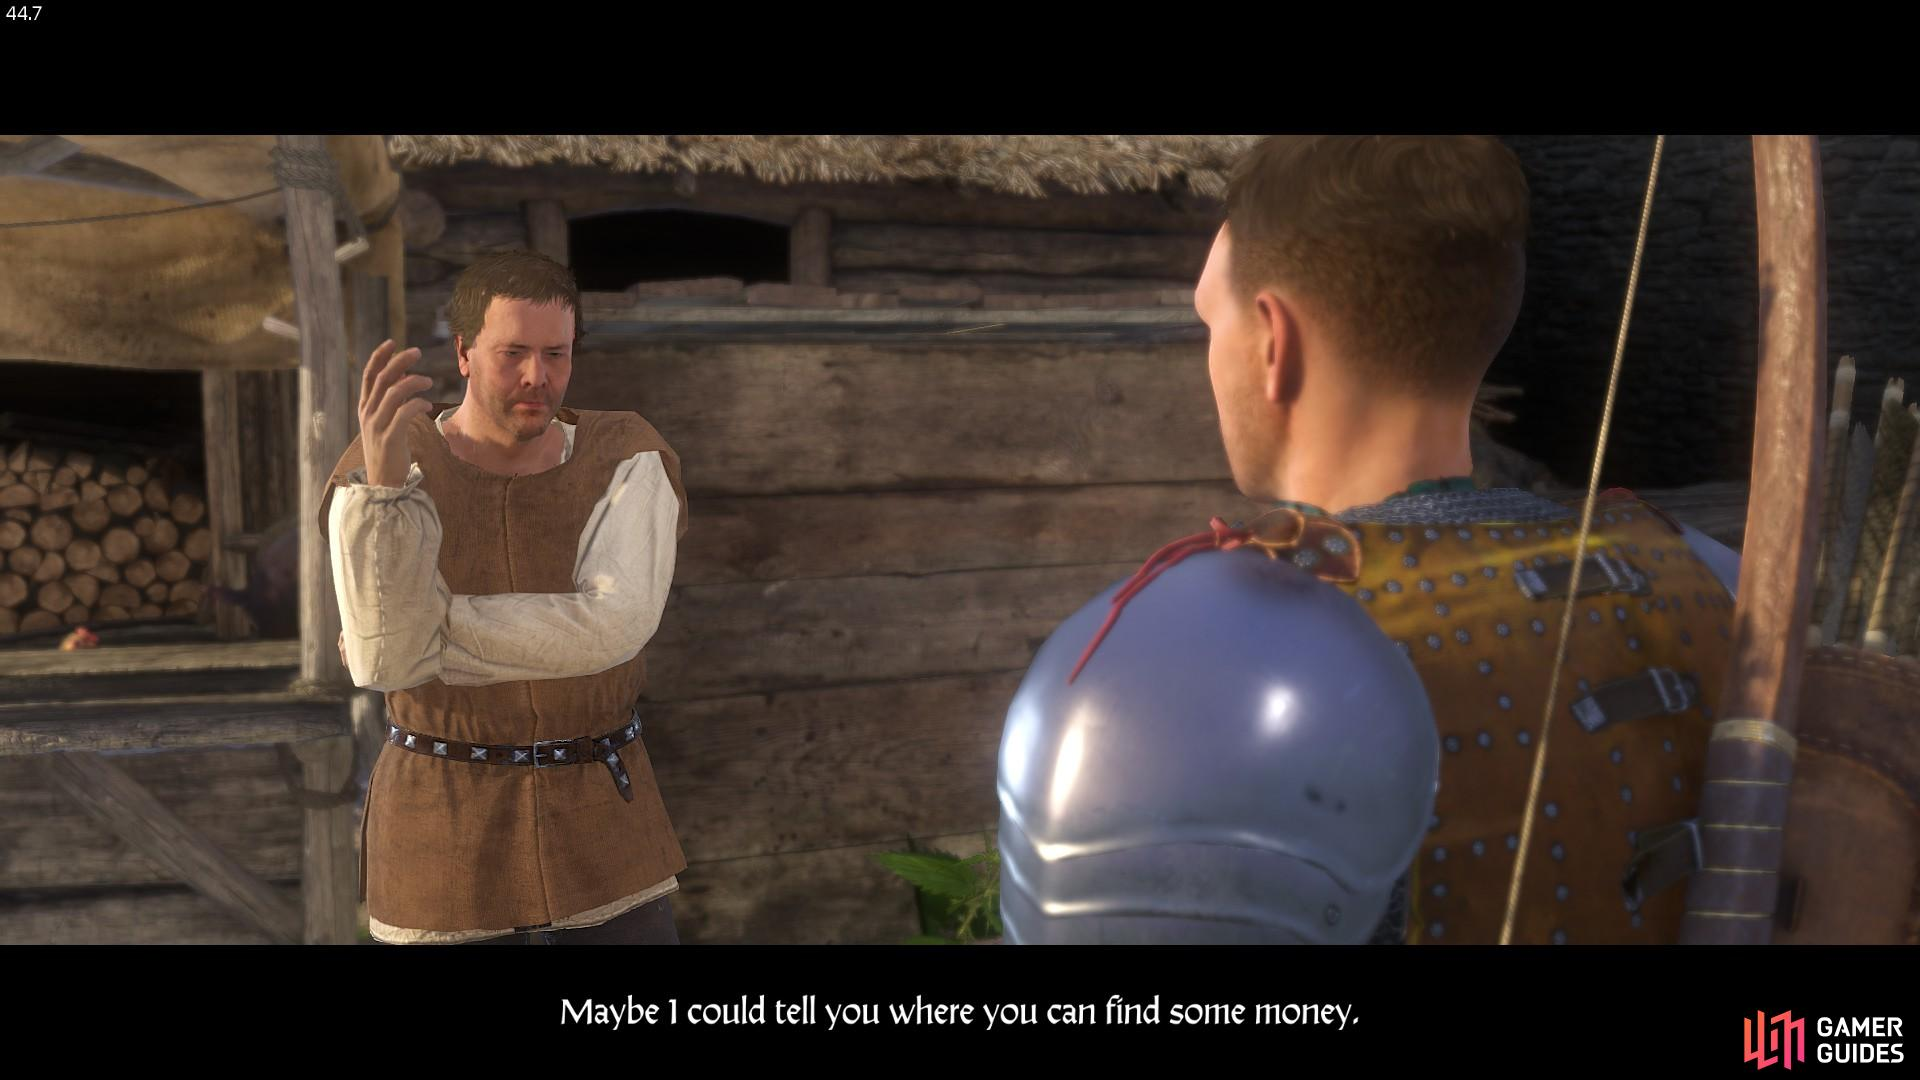 Henry reminds Kunesh that he still owes him money, but since he has none he instead directs Henry to a dove-cote in Skalitz, under which treasure can be found.